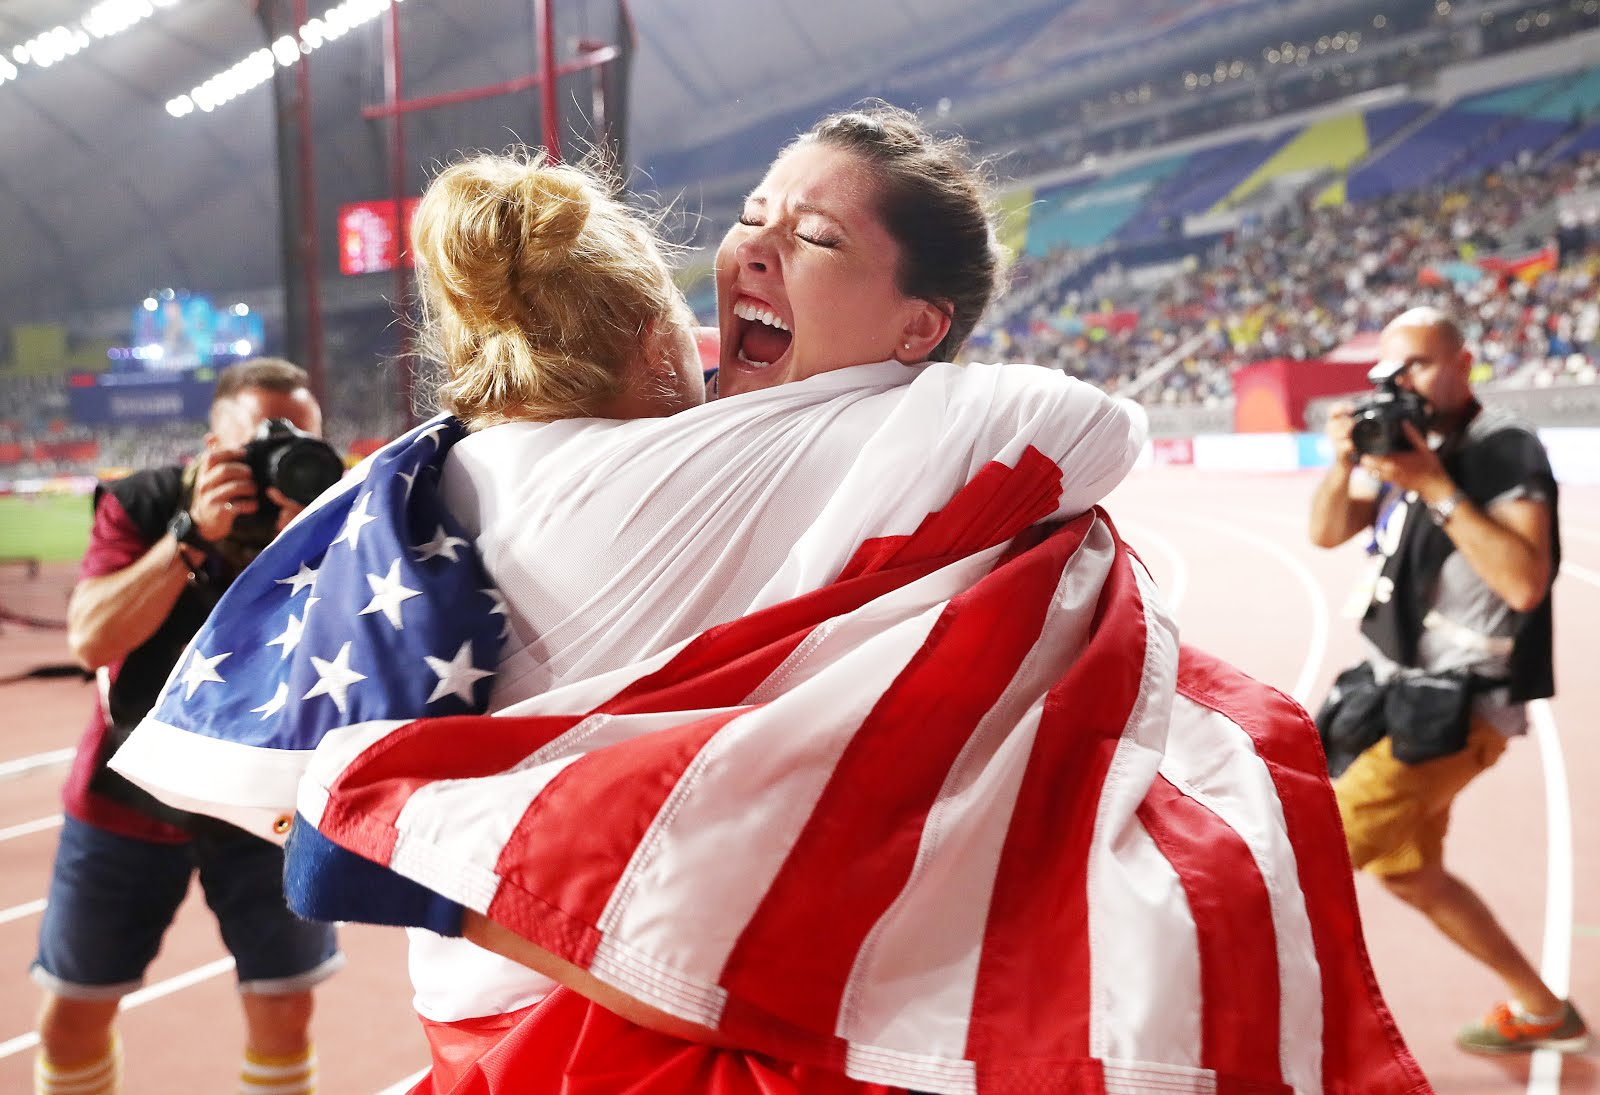 Besties Celebrate Silver and Gold